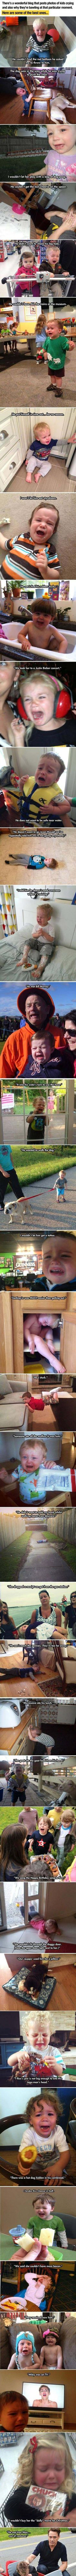 Kids Crying For The Funniest Reasons Ever.